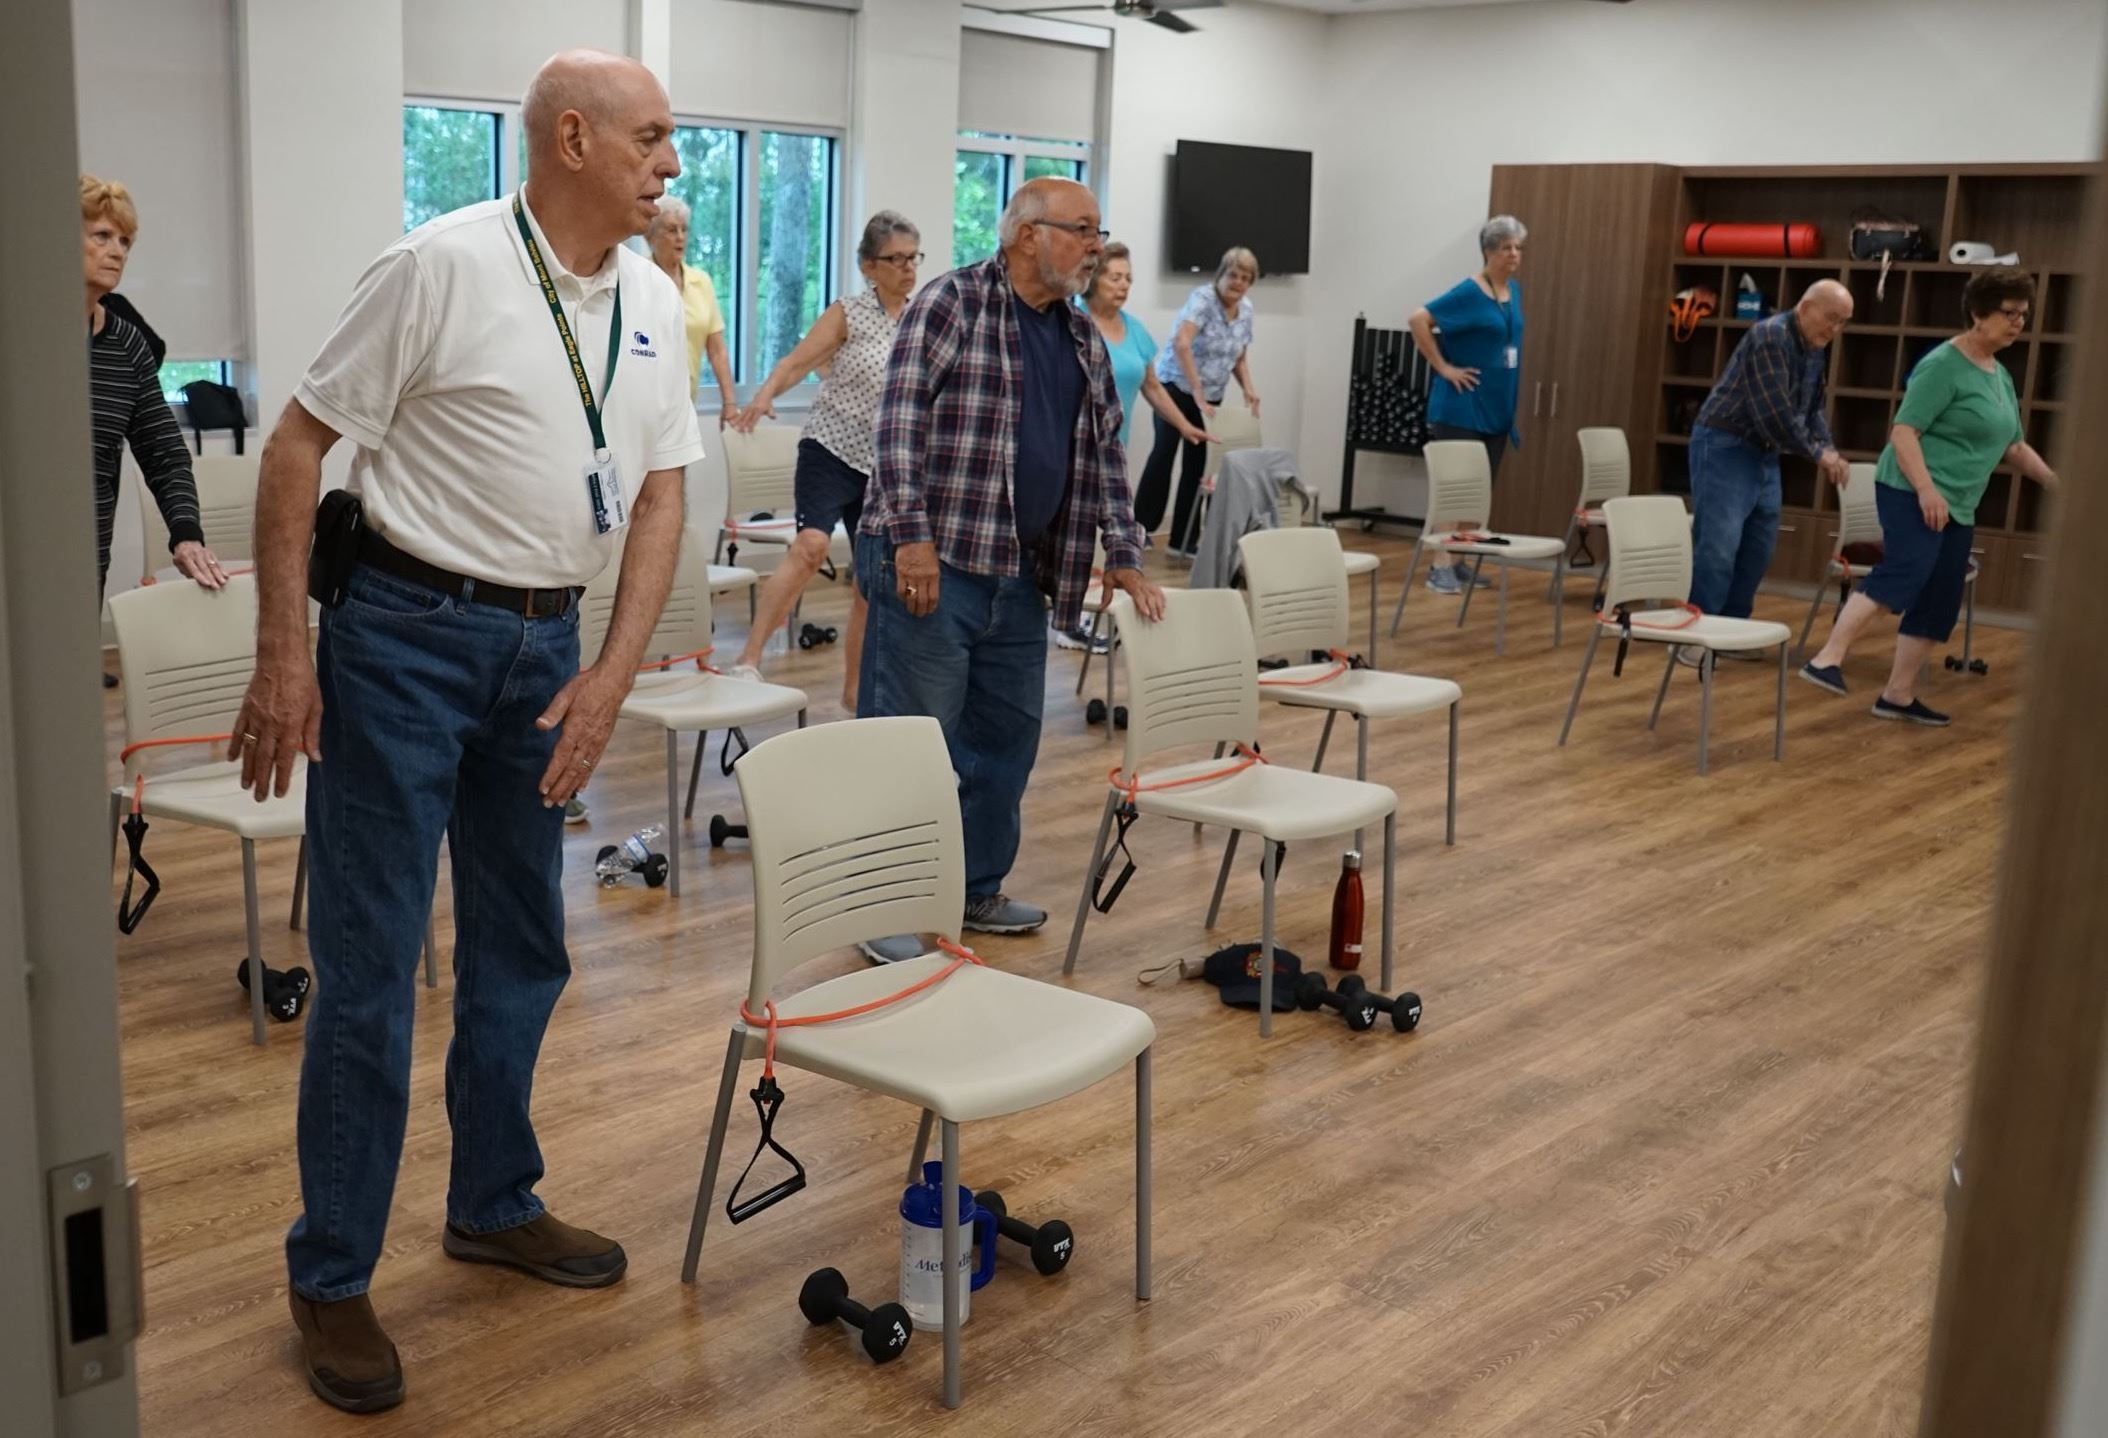 Mont Belvieu senior citizens participating in chair yoga at the Hilltop senior center.